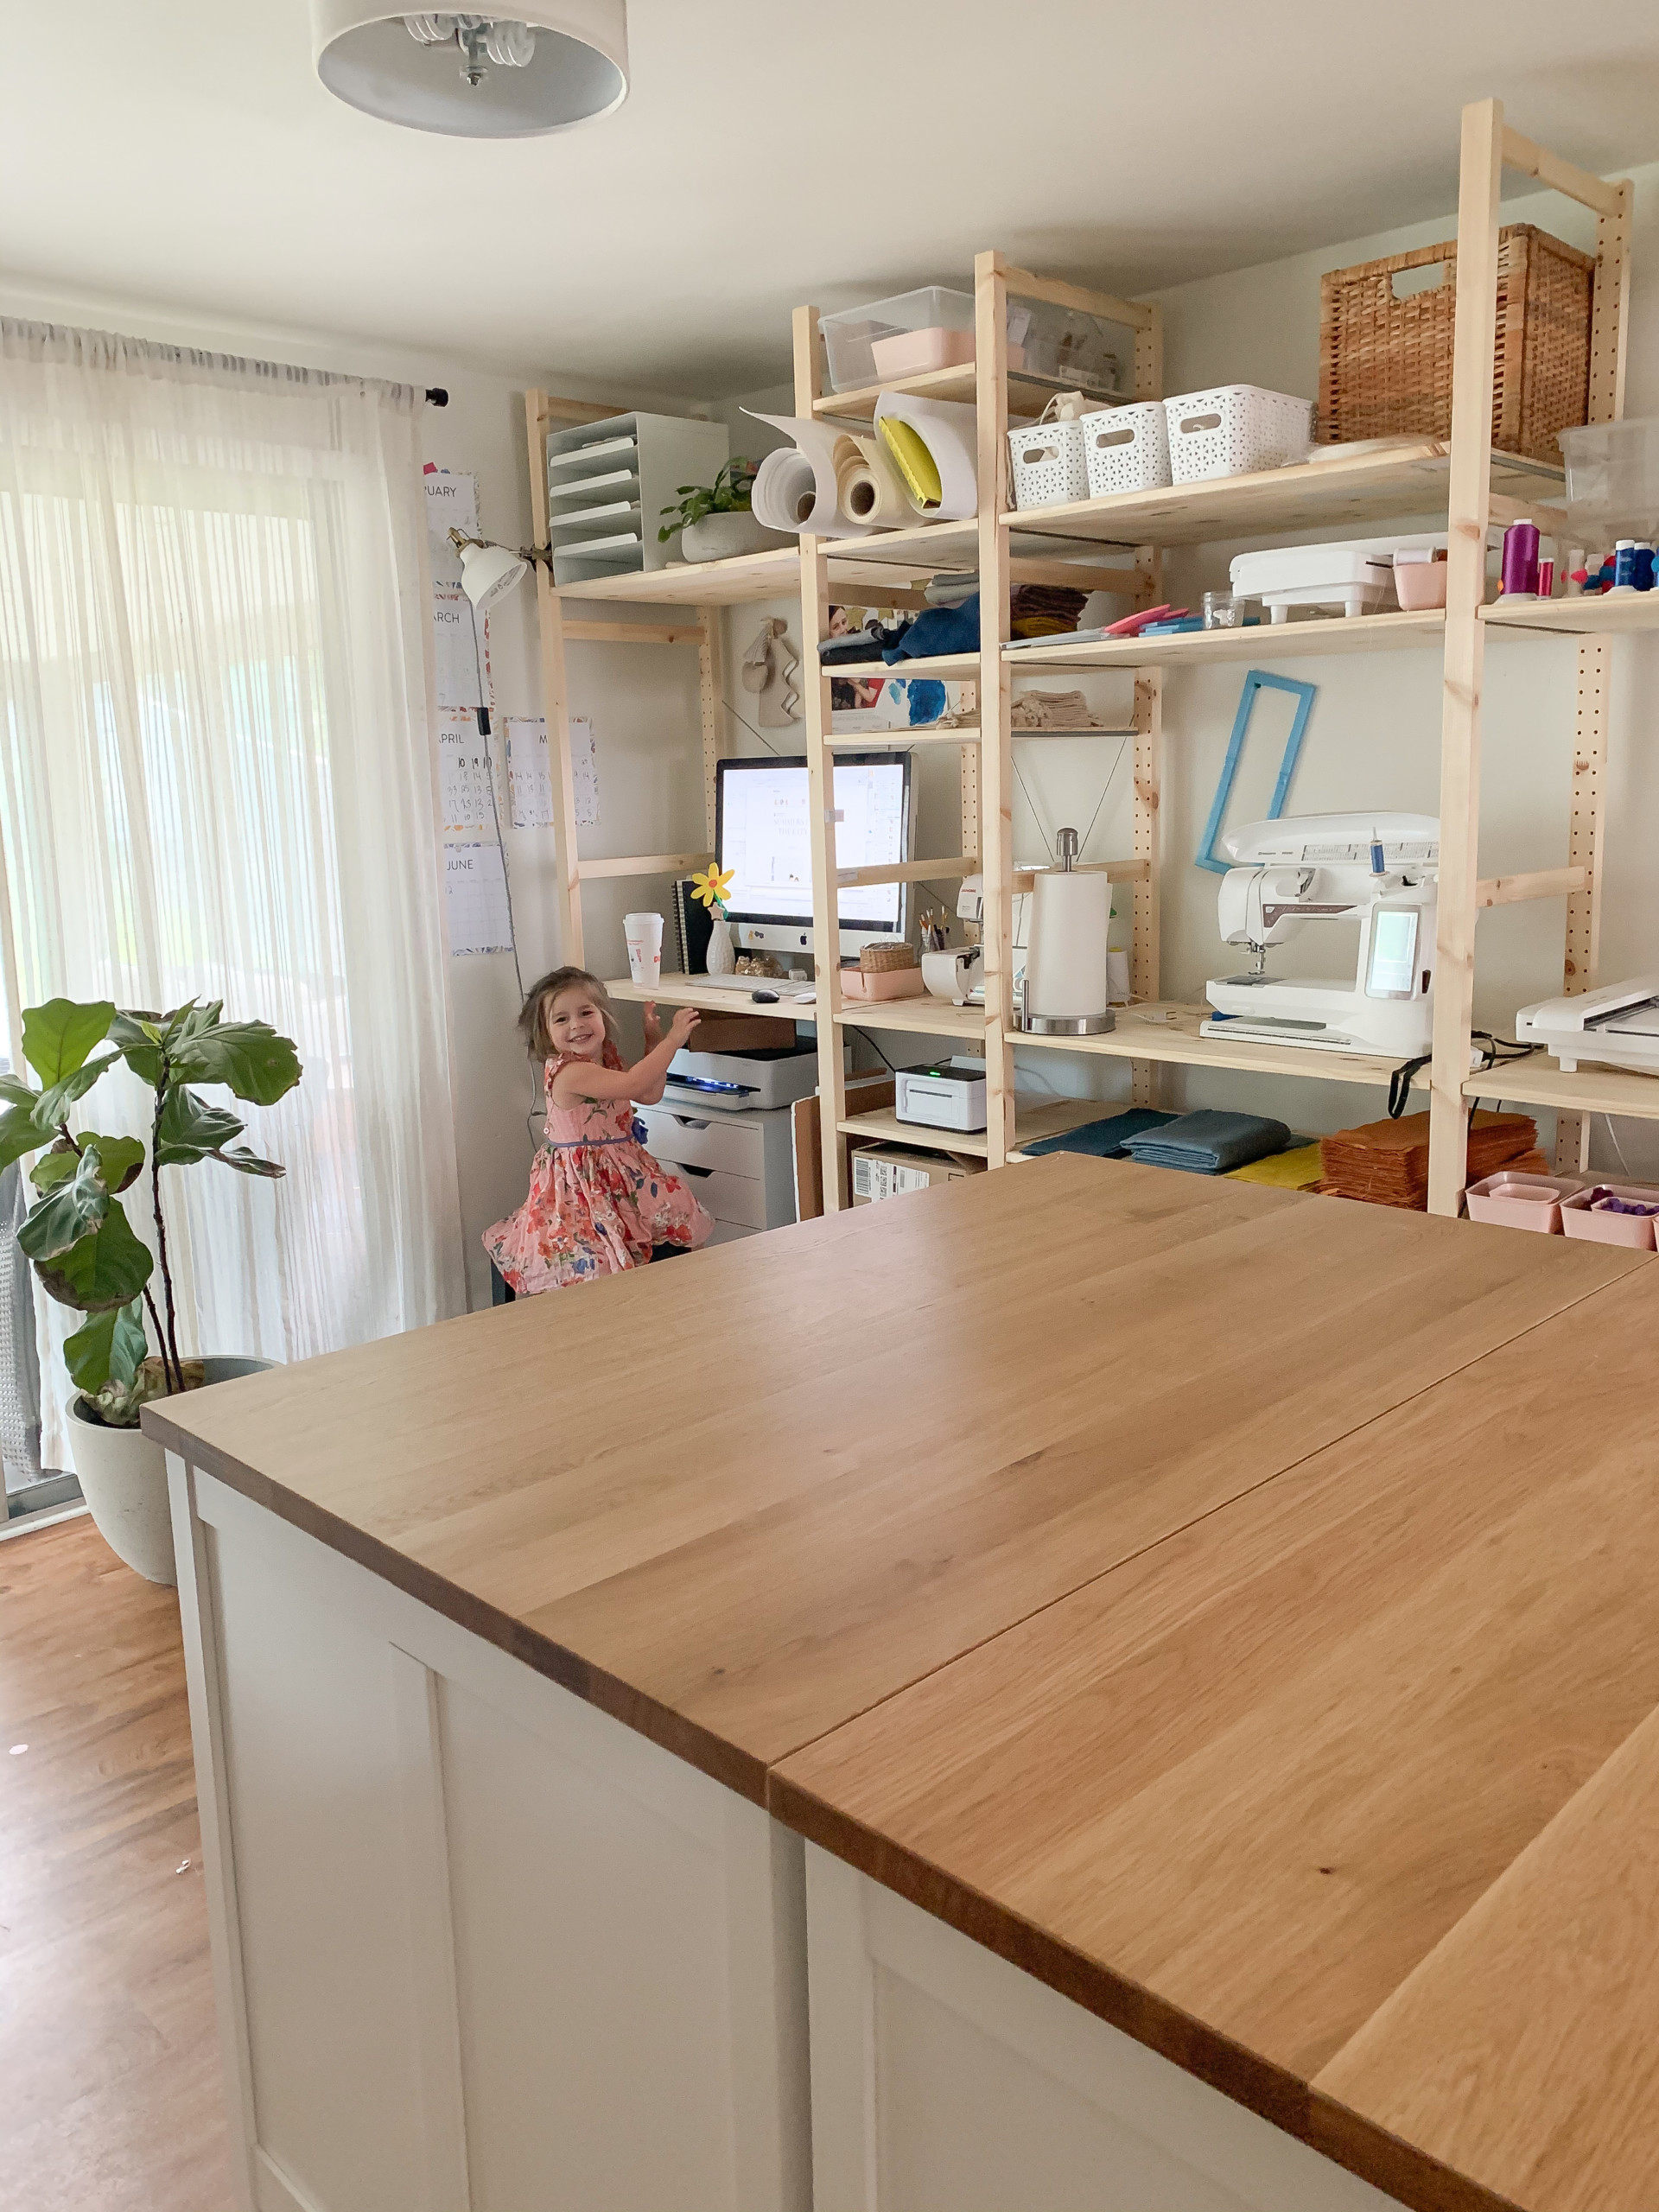 Sarah Cambio's workspace. There's a big wooden island, open wooden shelves filled with materials, and a fiddle leaf fig. Sarah's daughter is wearing pink and sitting by the shelves at a computer.